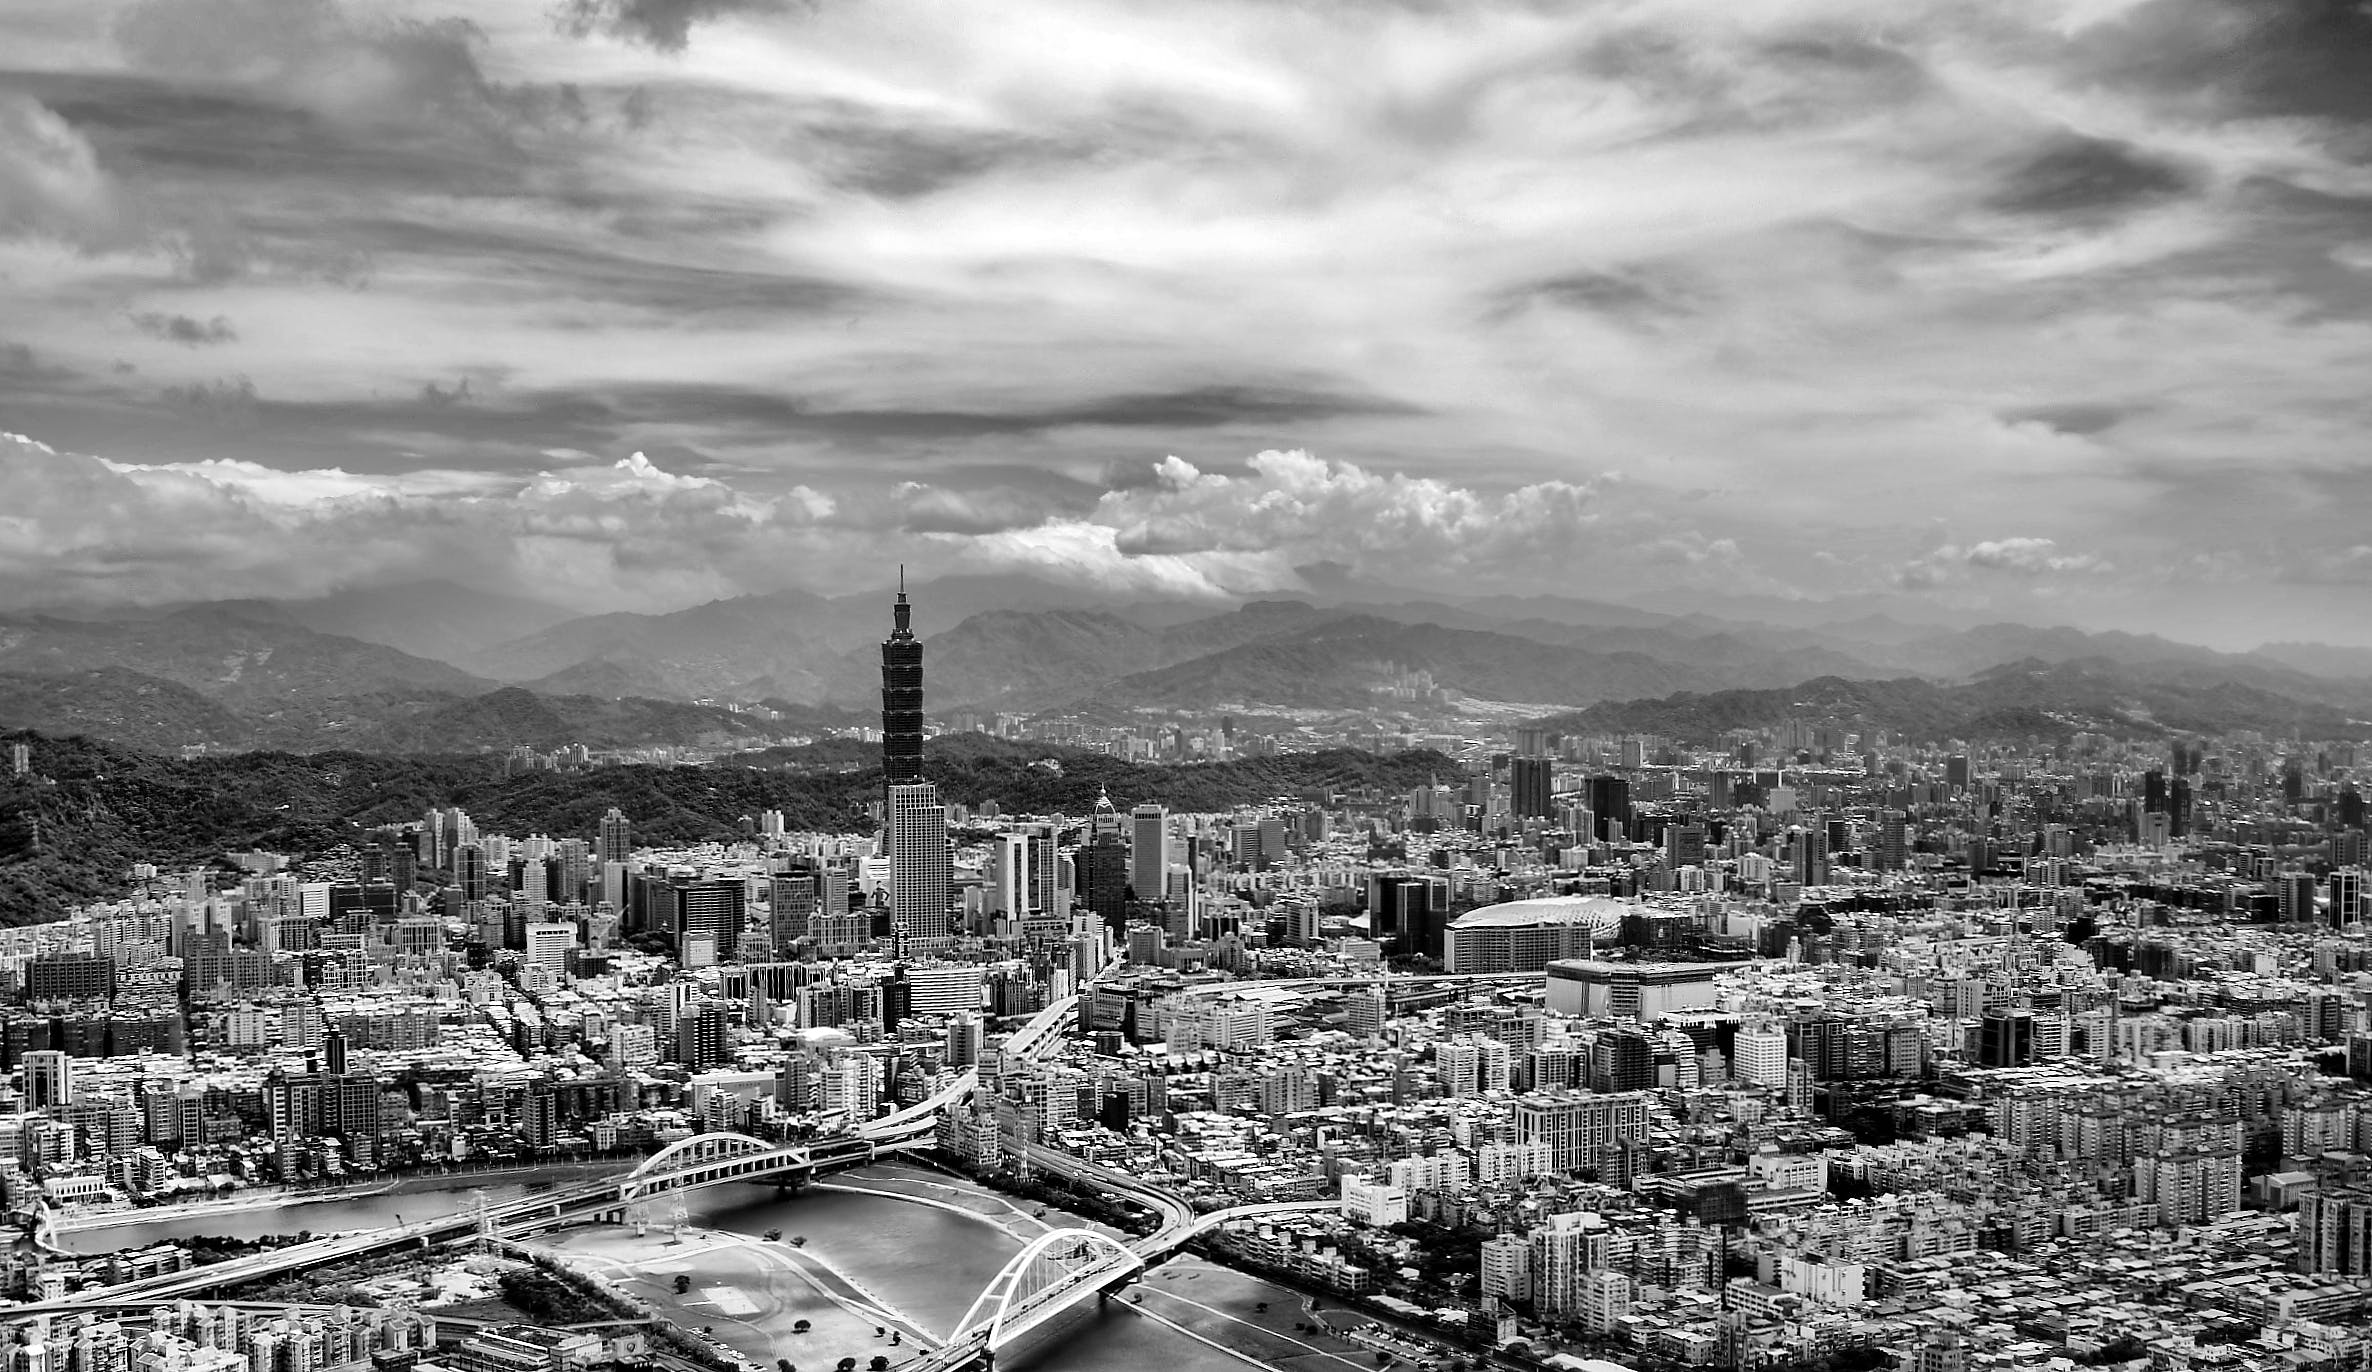 Black and White Aerial View of City